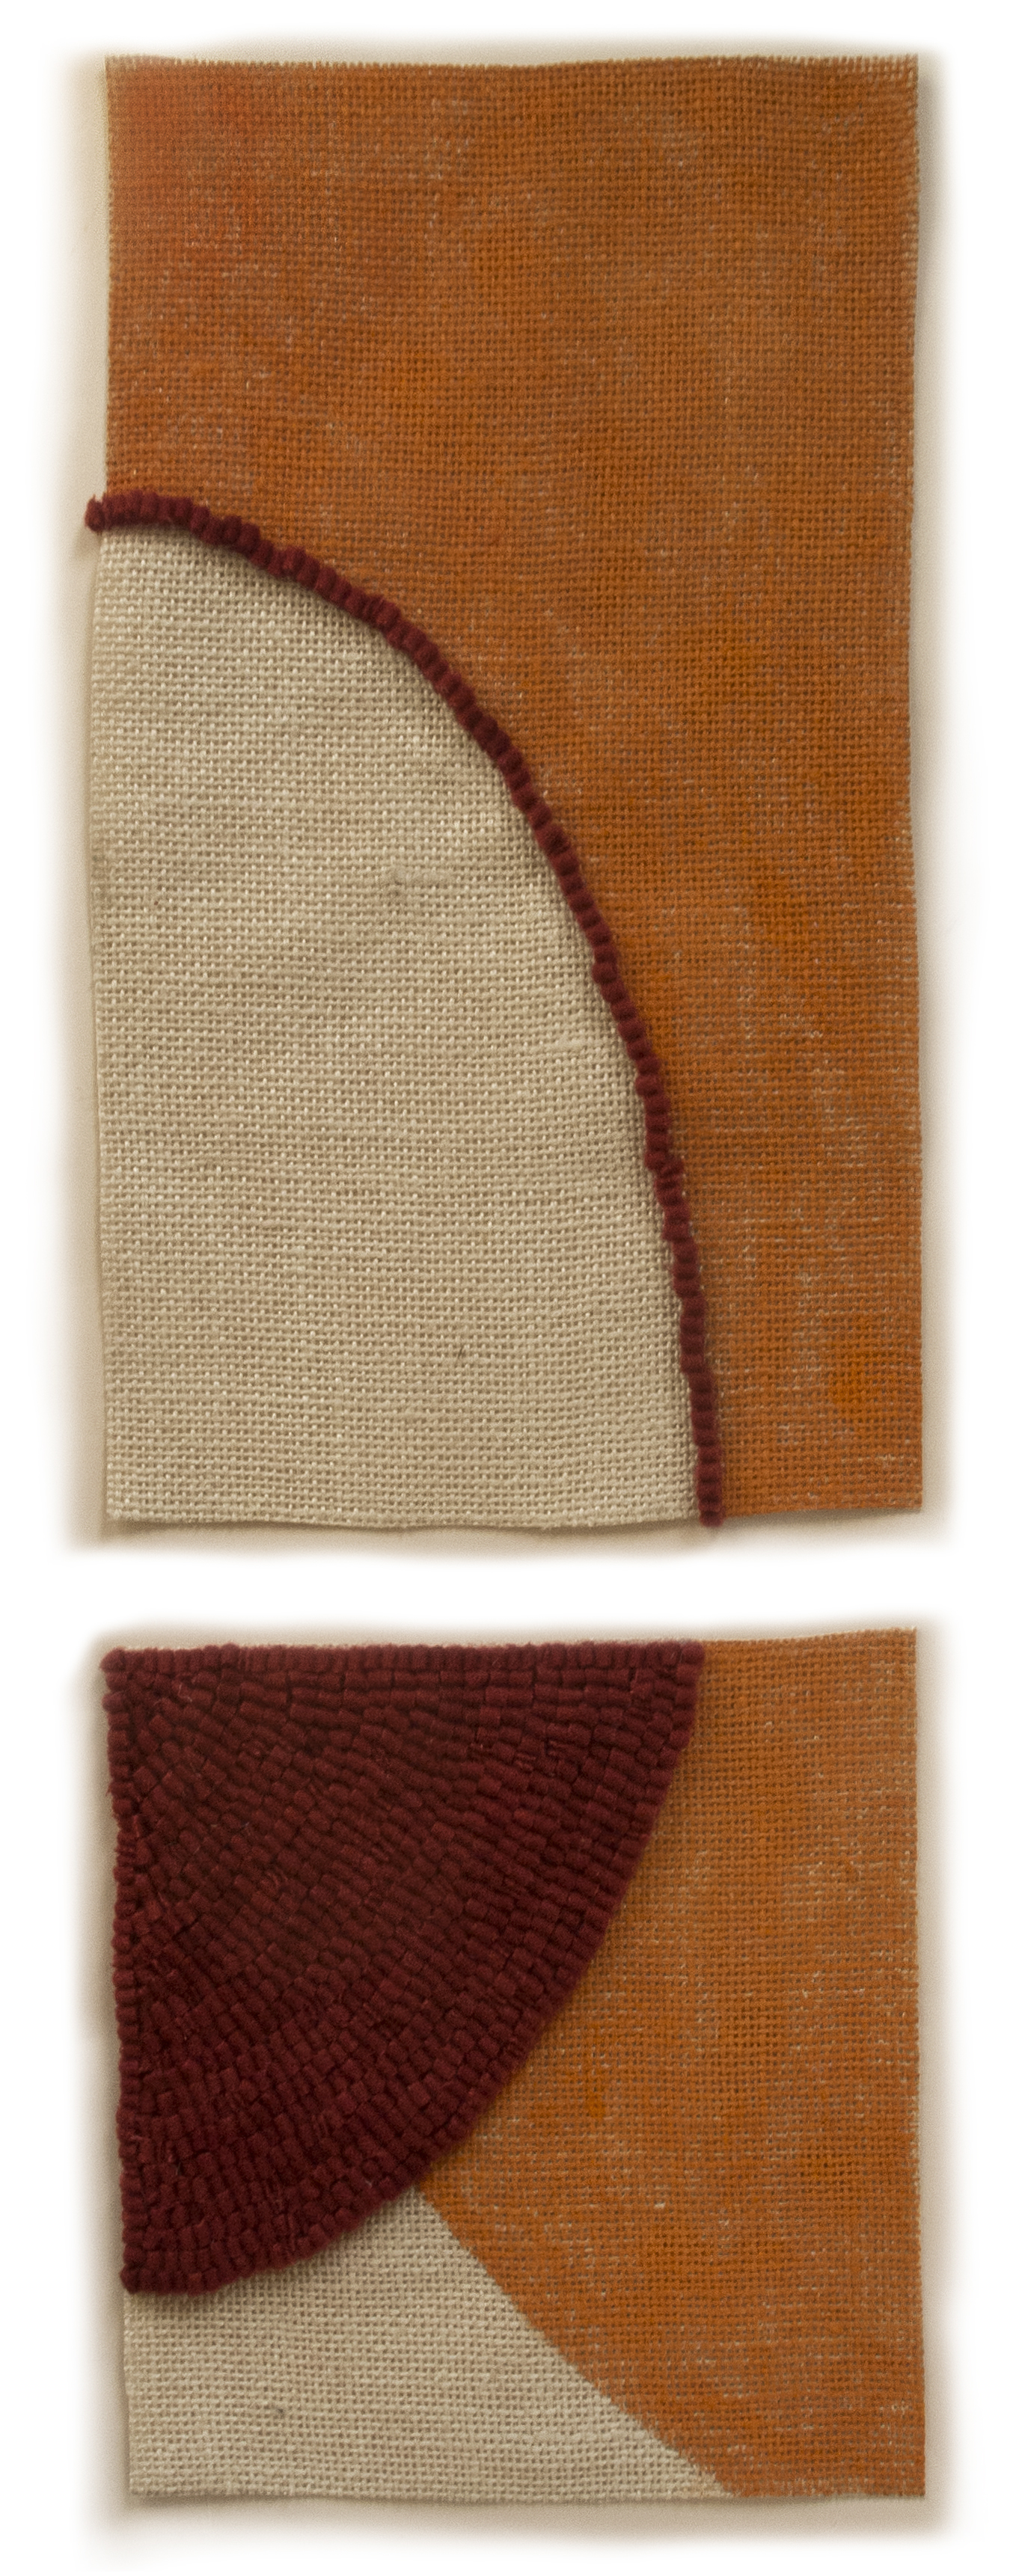 Altoon Sultan: 2013 #18, 2013, hand dyed wool and egg tempera on linen, multi part 2 panels,2 panels, 12 3/4 x 8, 8 x 8